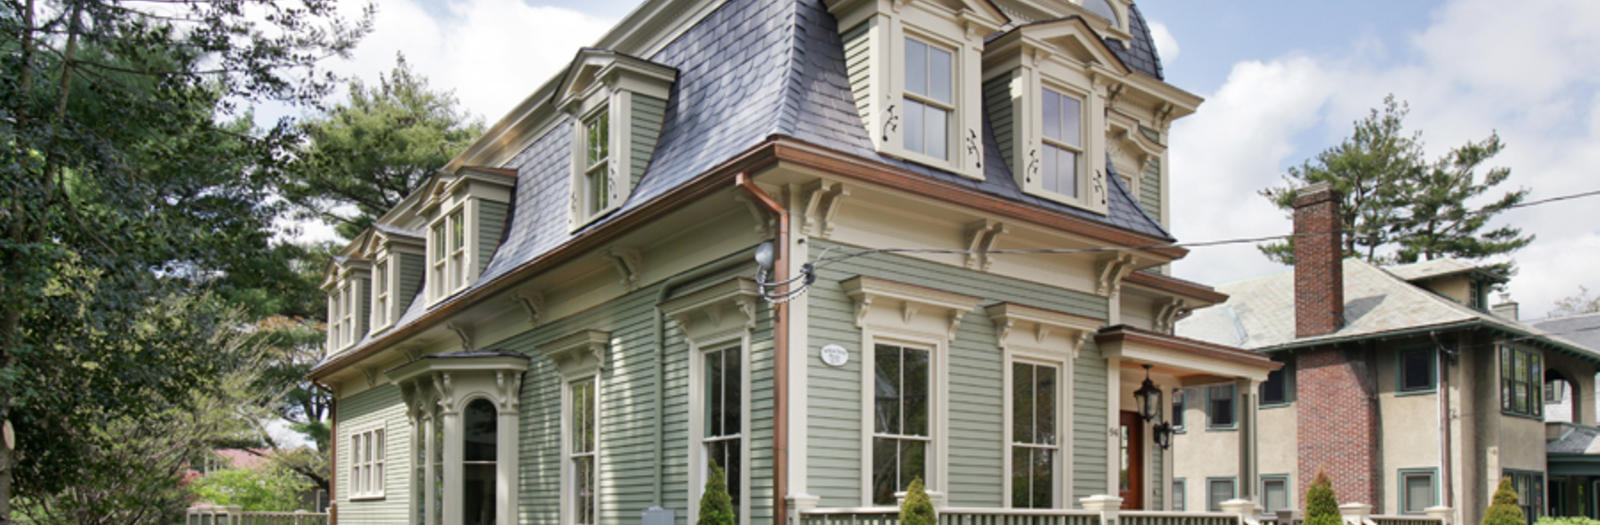 Victorian Home Exterior with decorative molding around windows